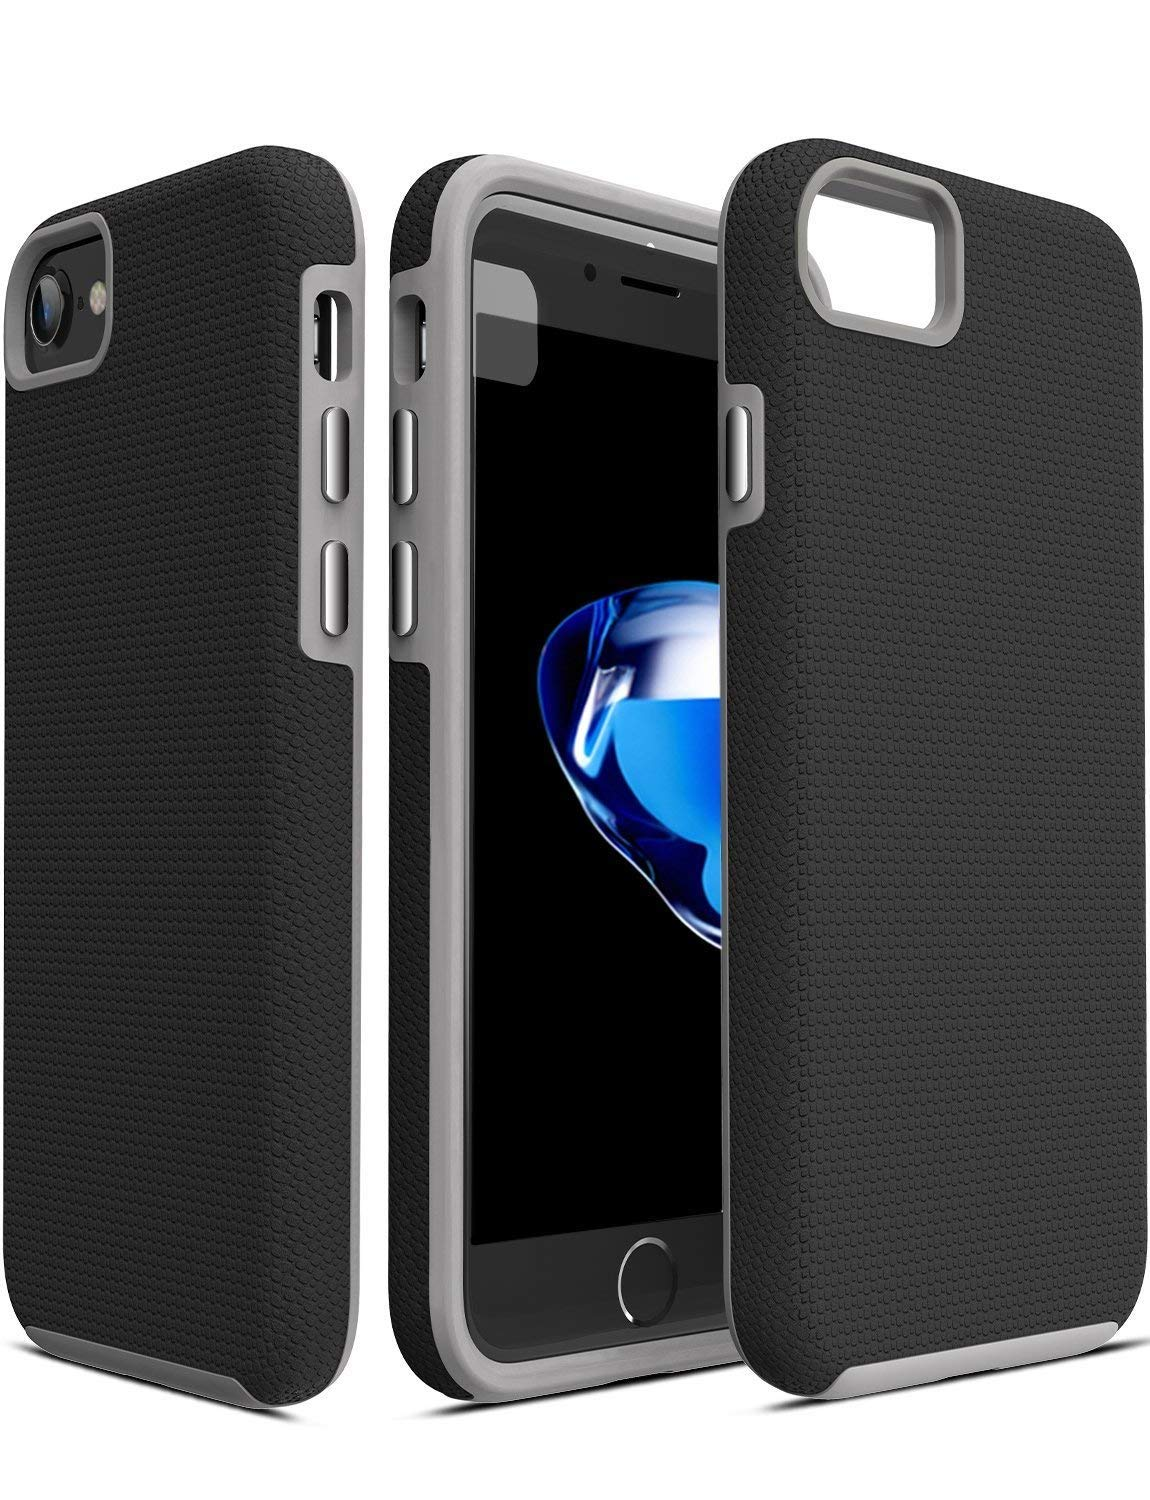 Tozo Armor Case for iPhone 7